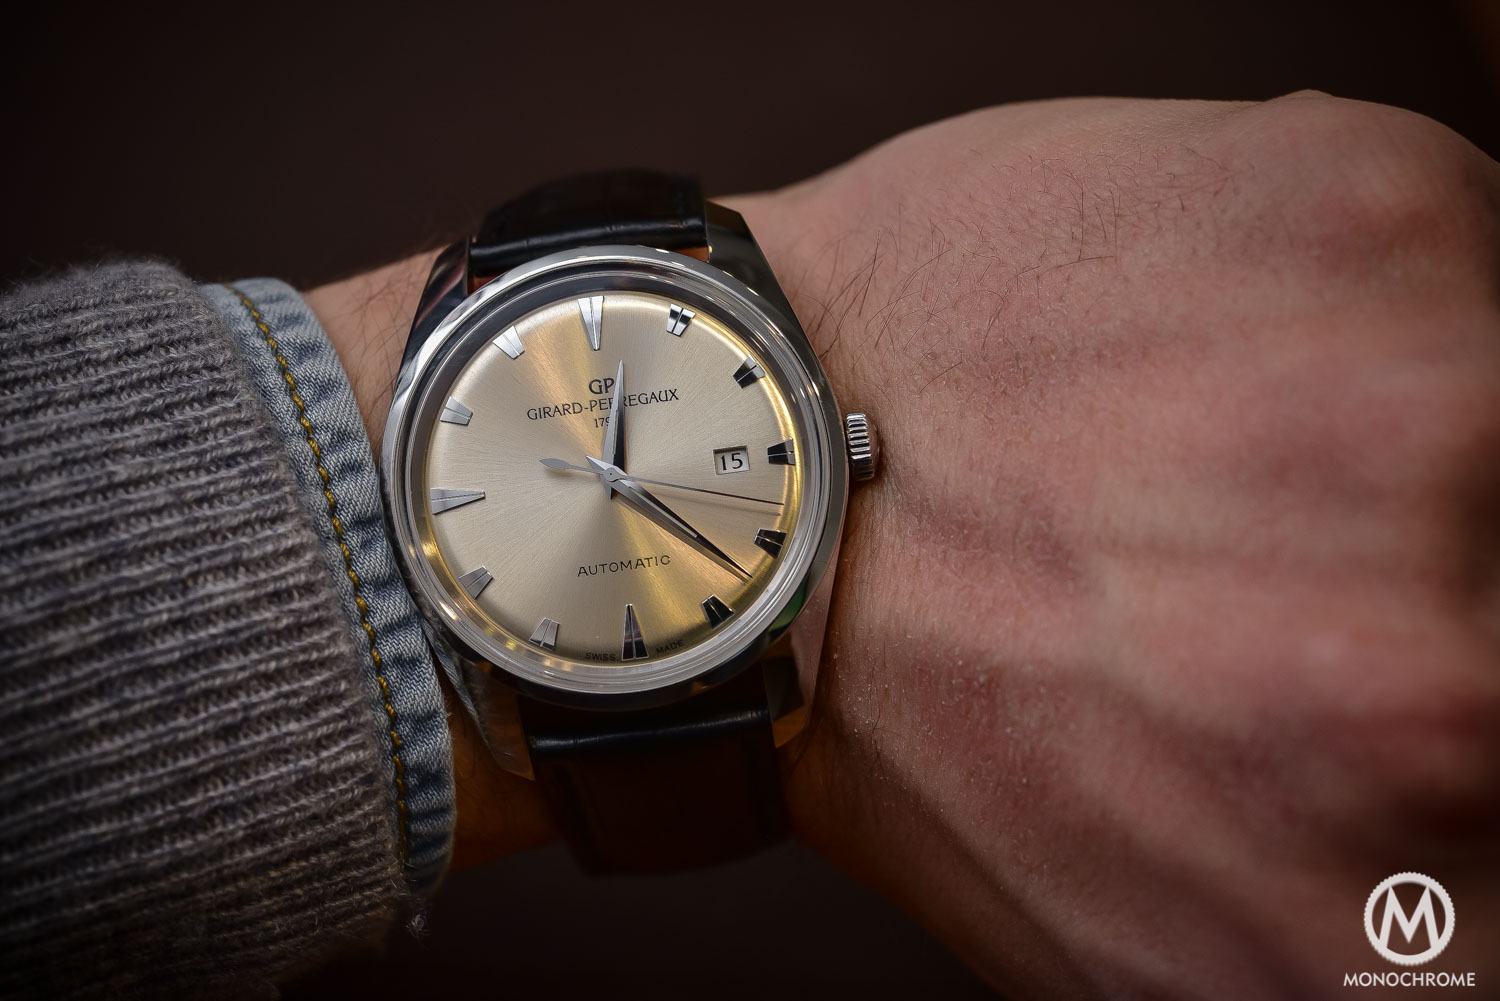 Hands on girard perregaux 1957 tribute to the gyromatic is it really live photos for Girard perregaux